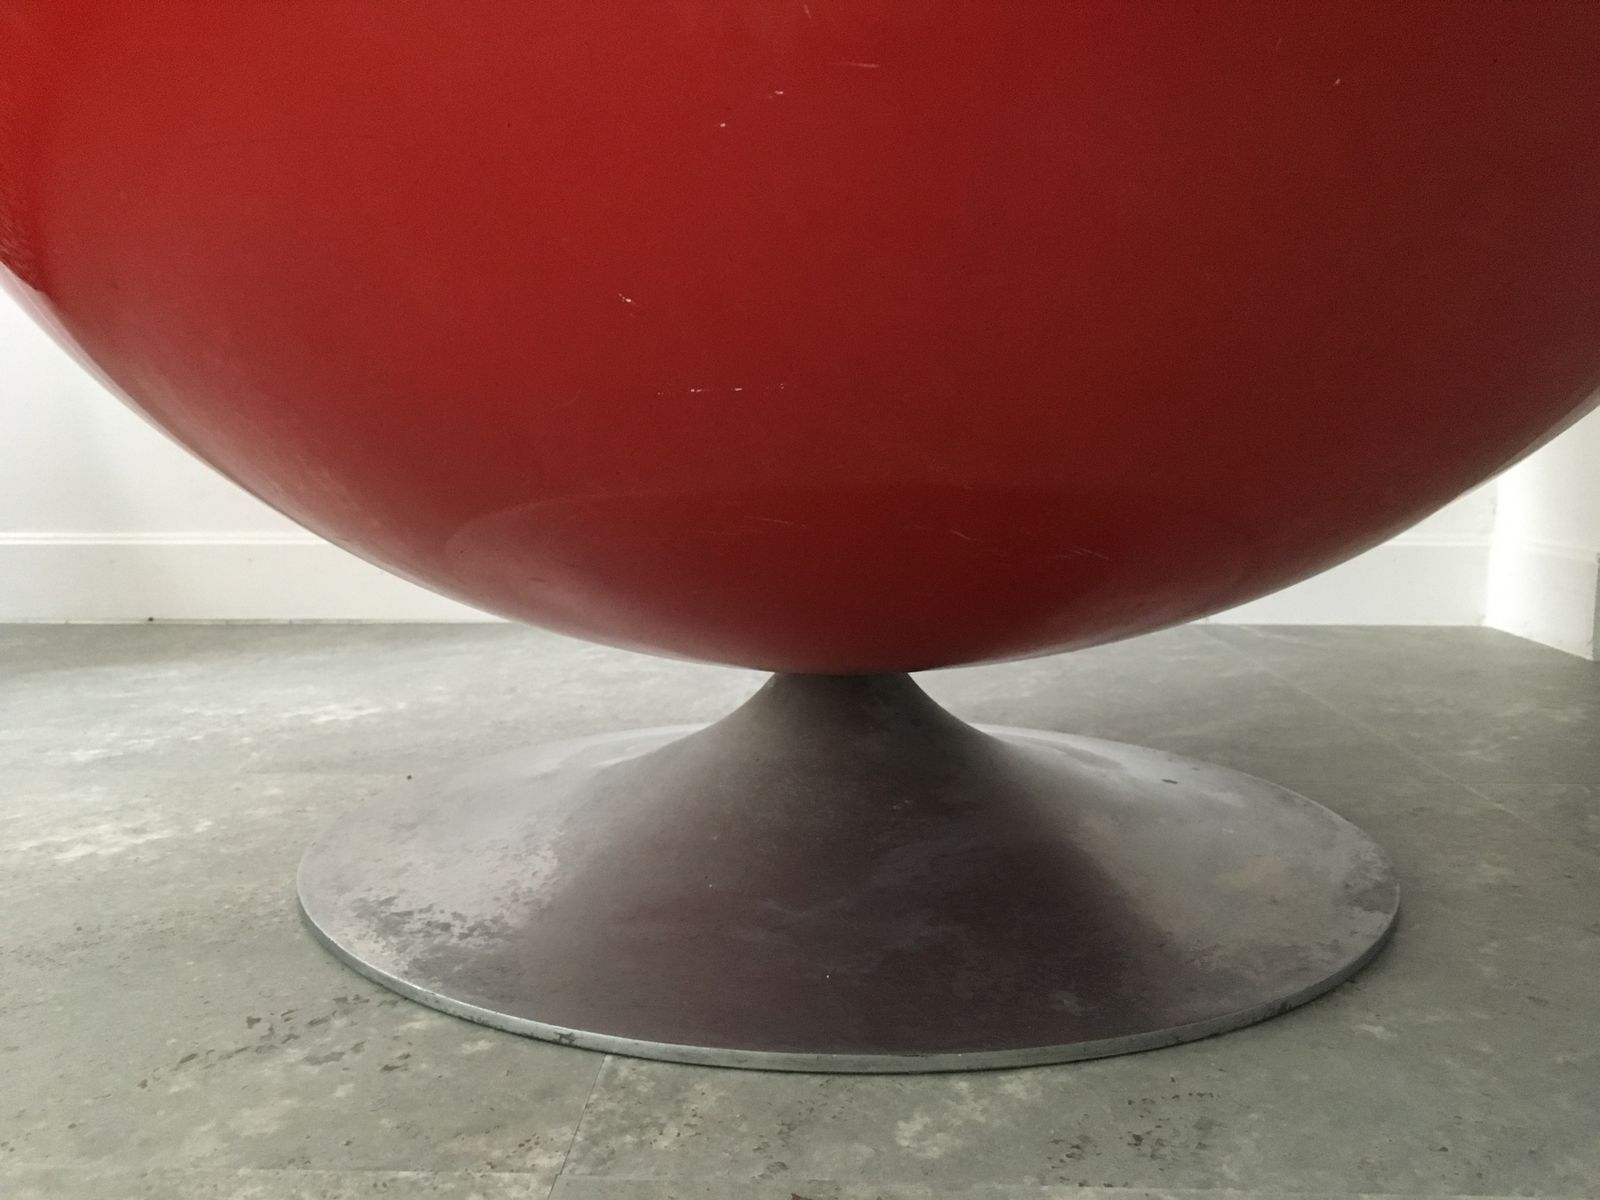 Ovalia Egg Chair by Thor Larsen for Torlan Staffanstorp 1968 for